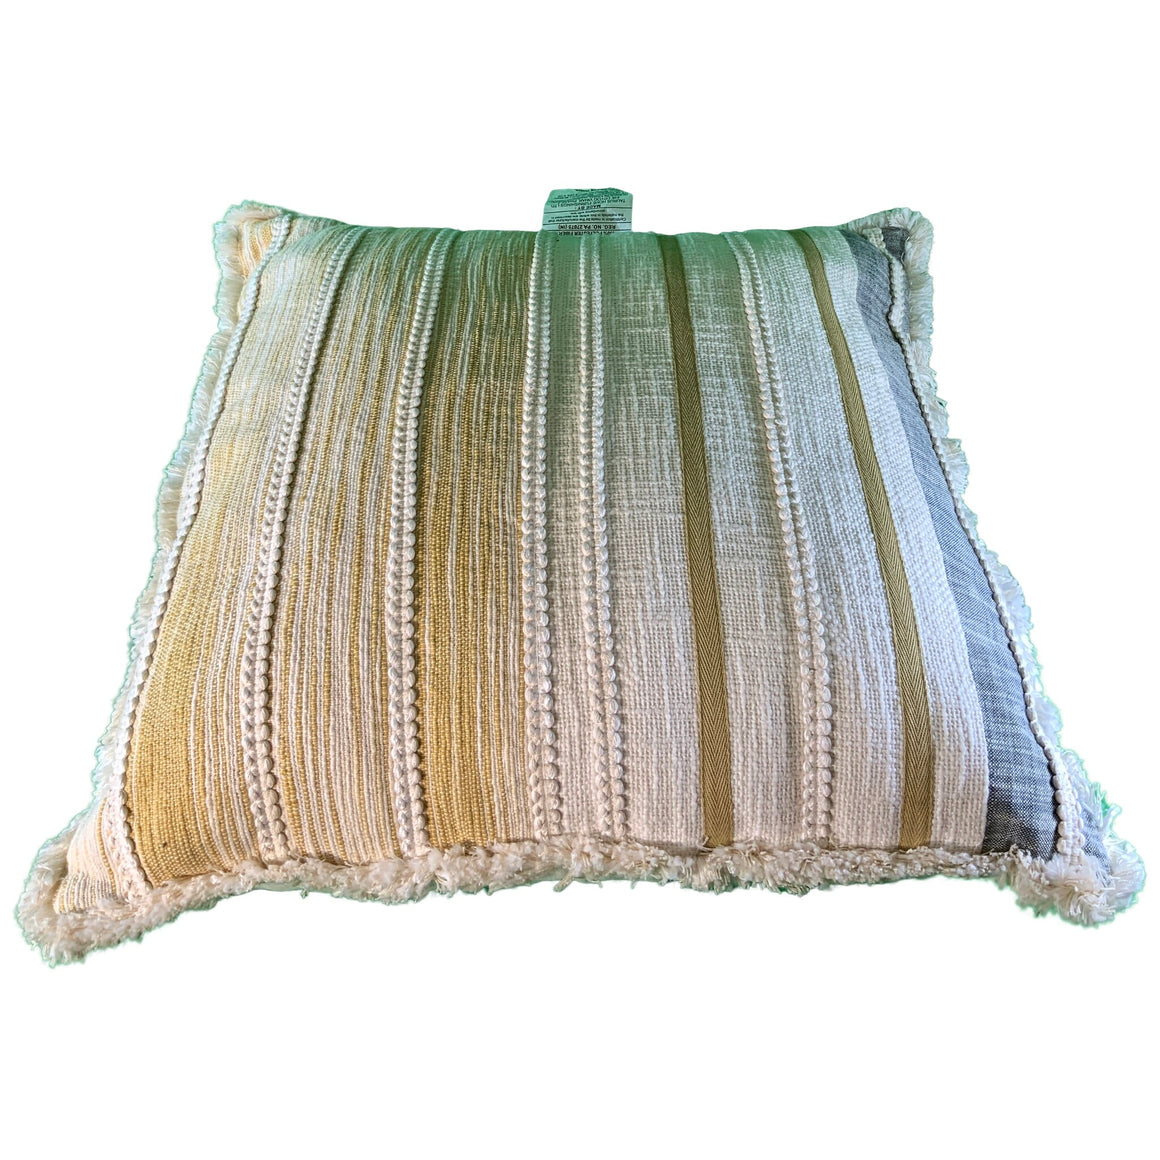 Patched Oversize Throw Pillow - Opalhouse™